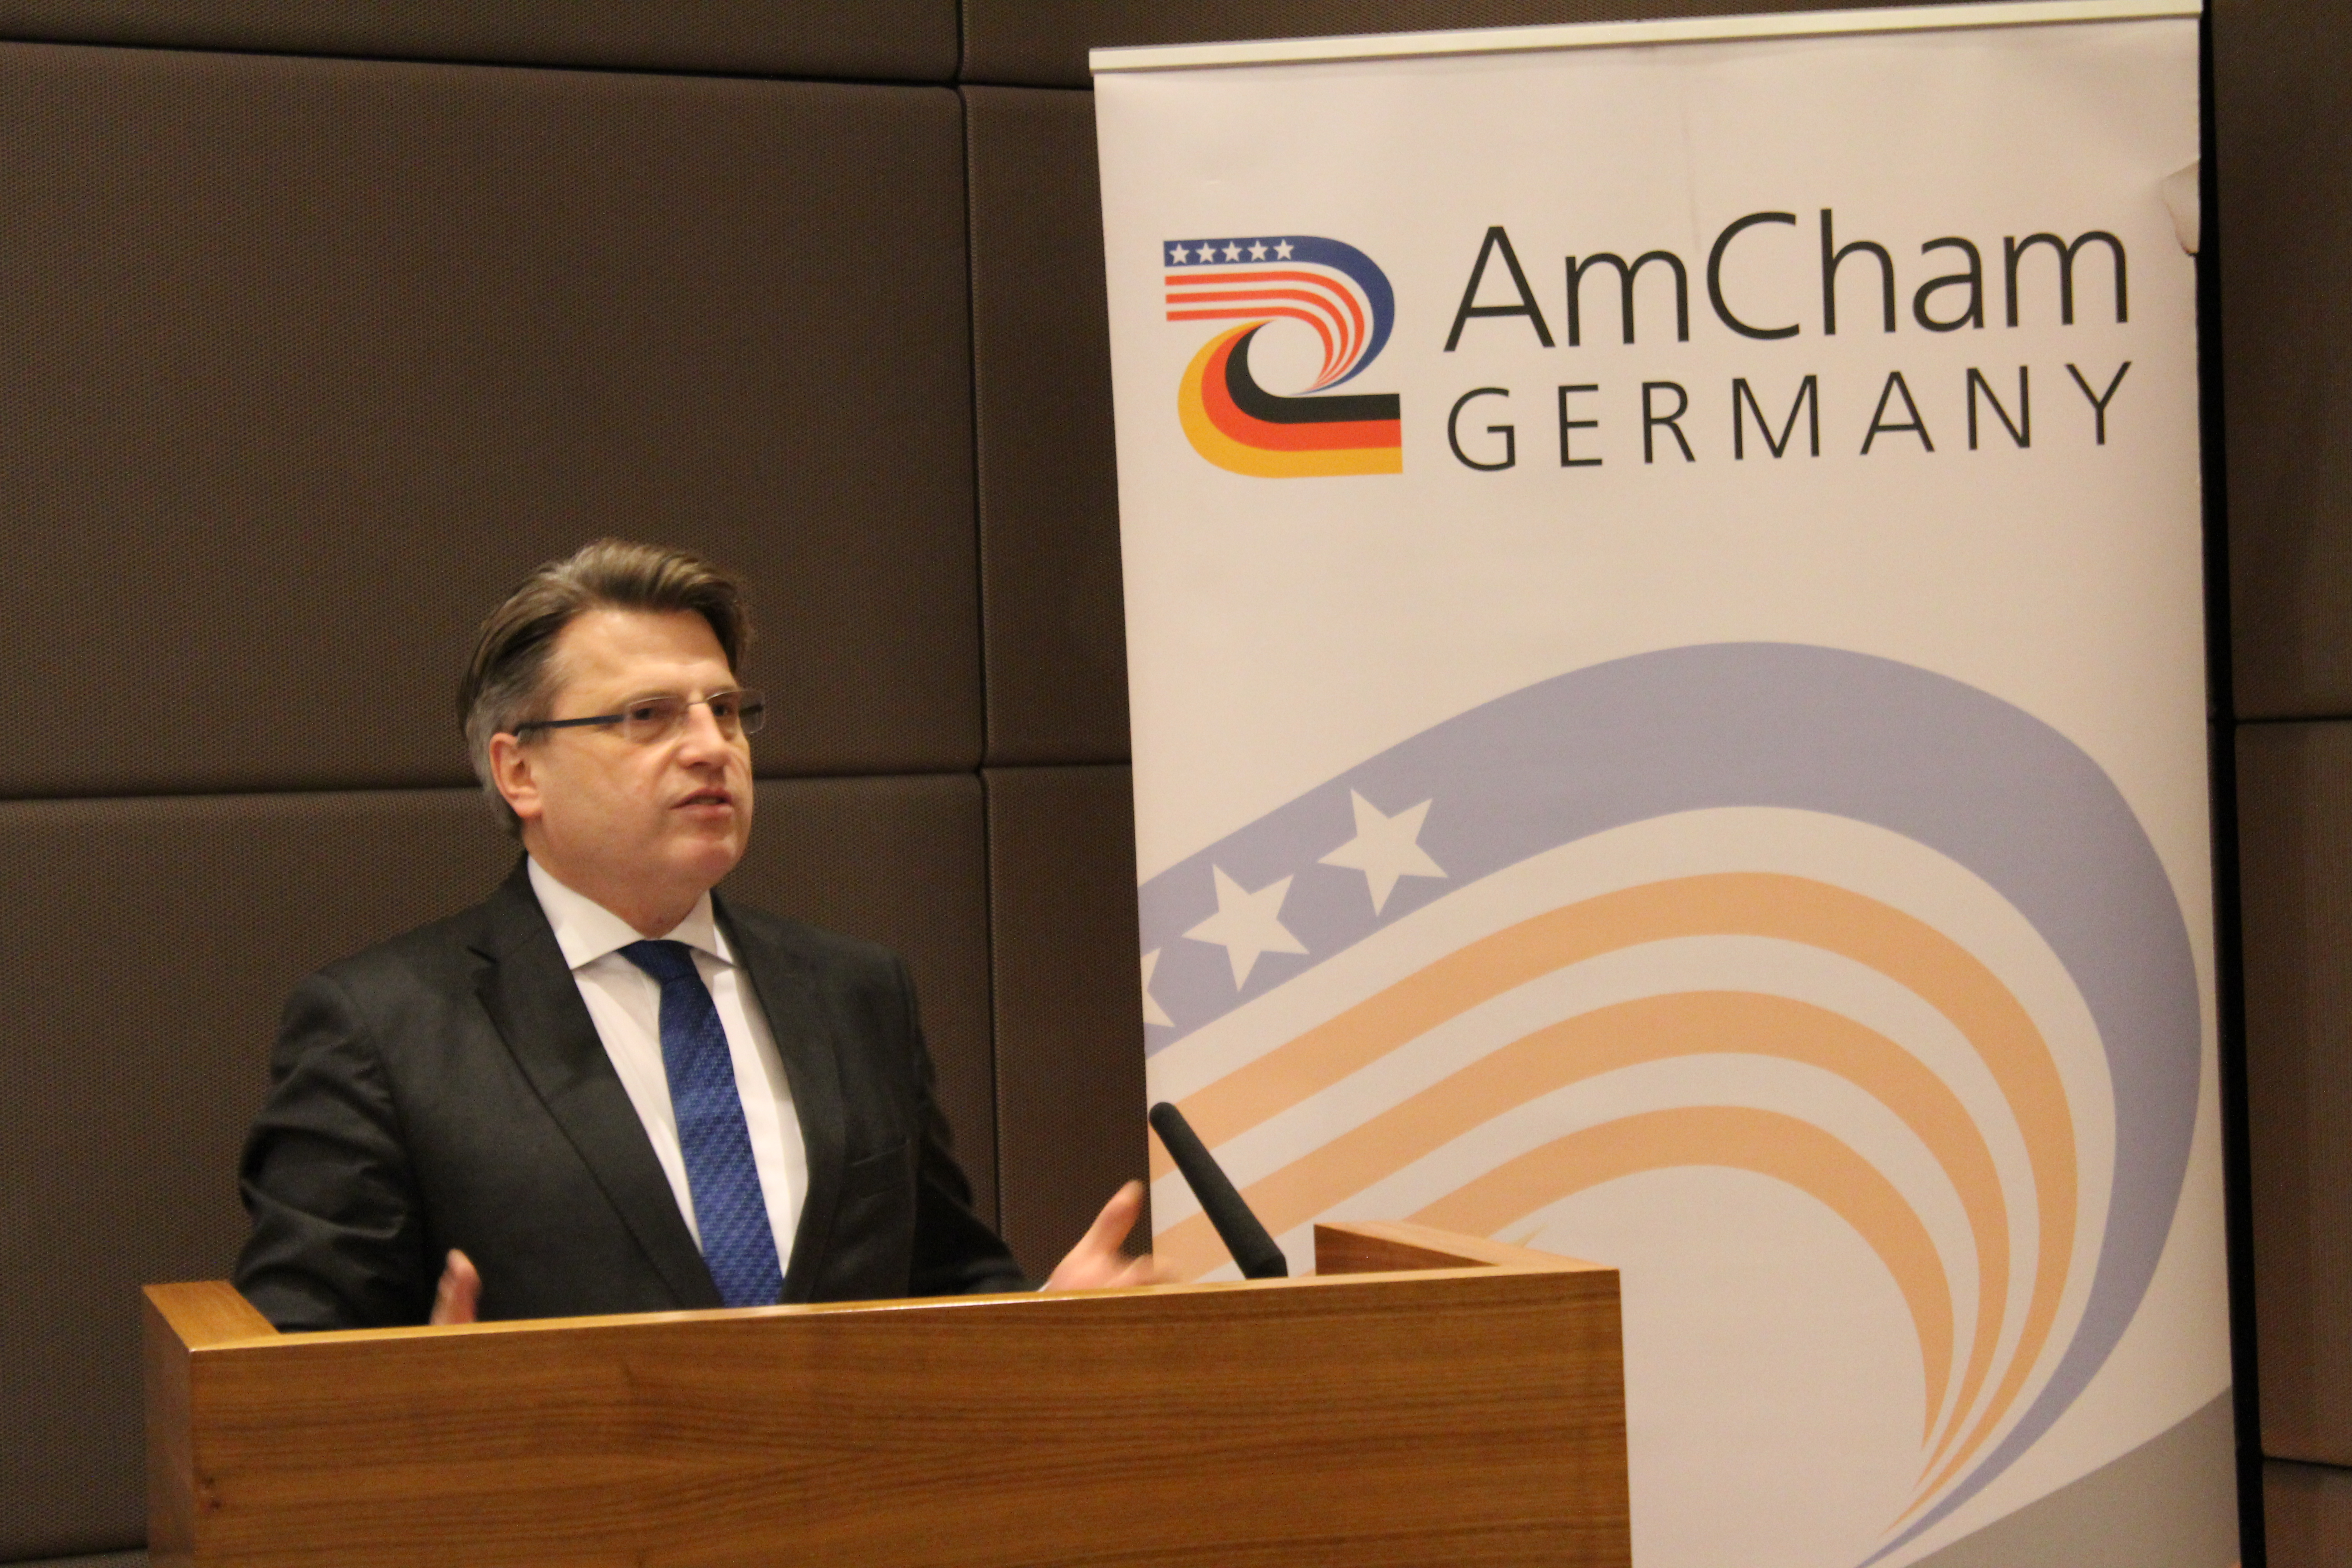 american chamber of commerce in germany ev: